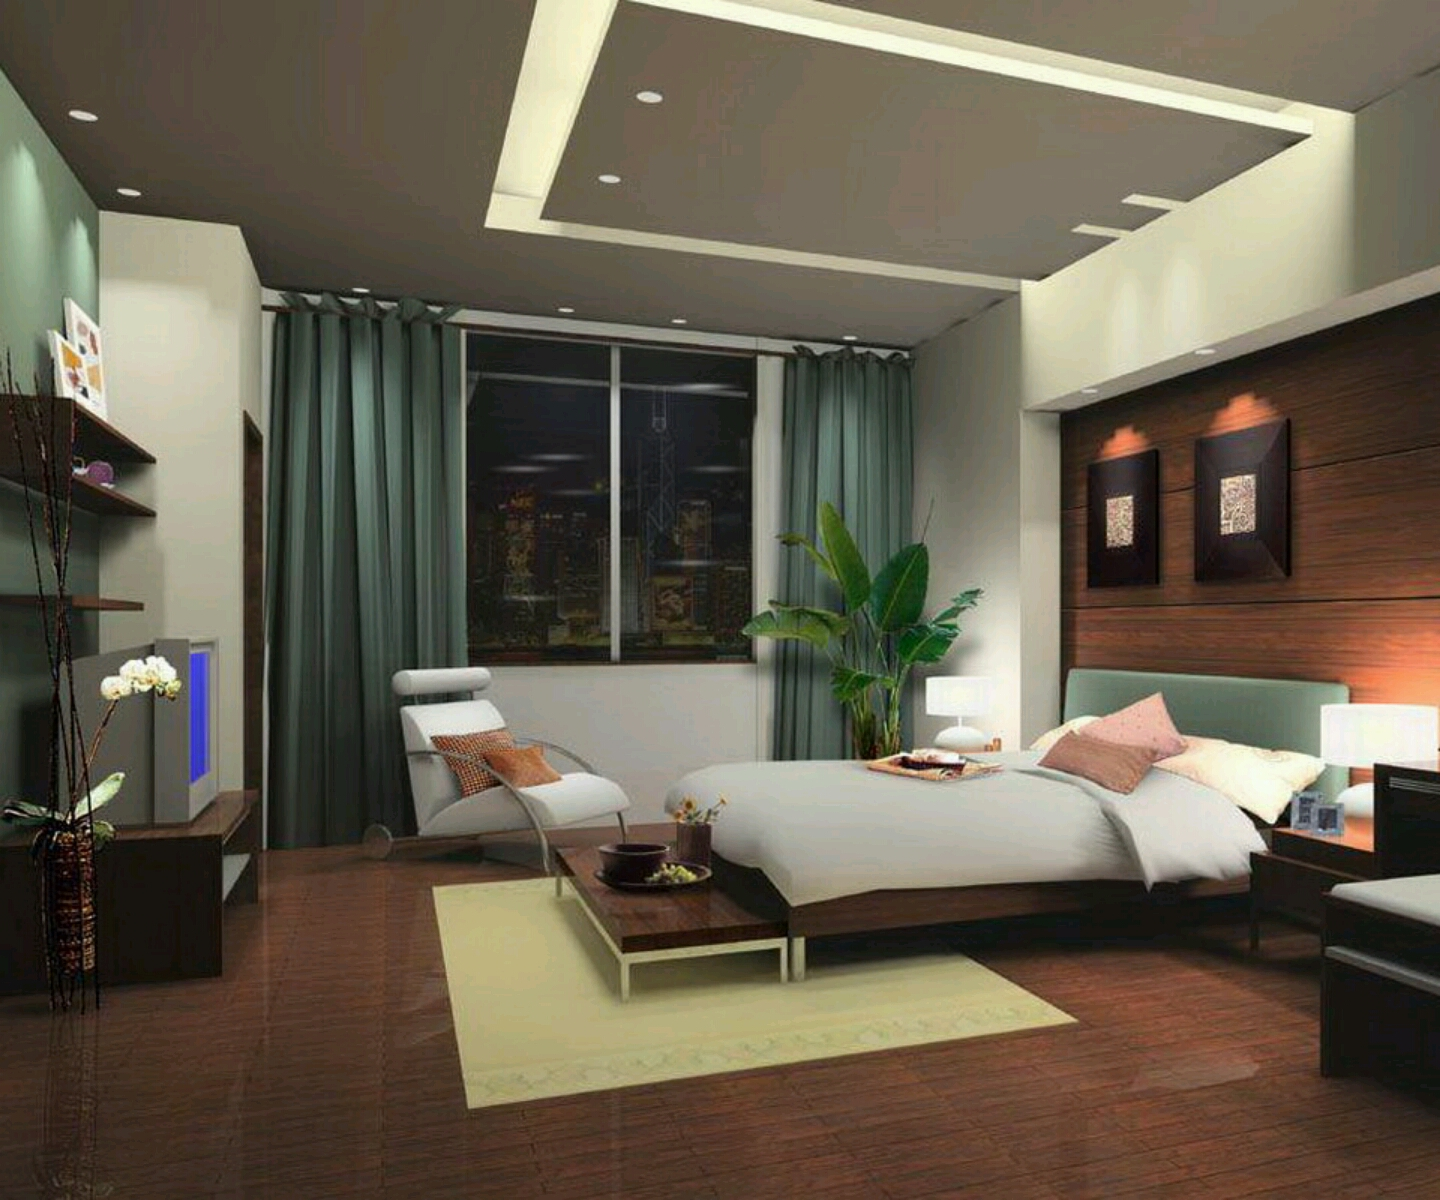 New home designs latest modern bedrooms designs best ideas for Bed room interior design images